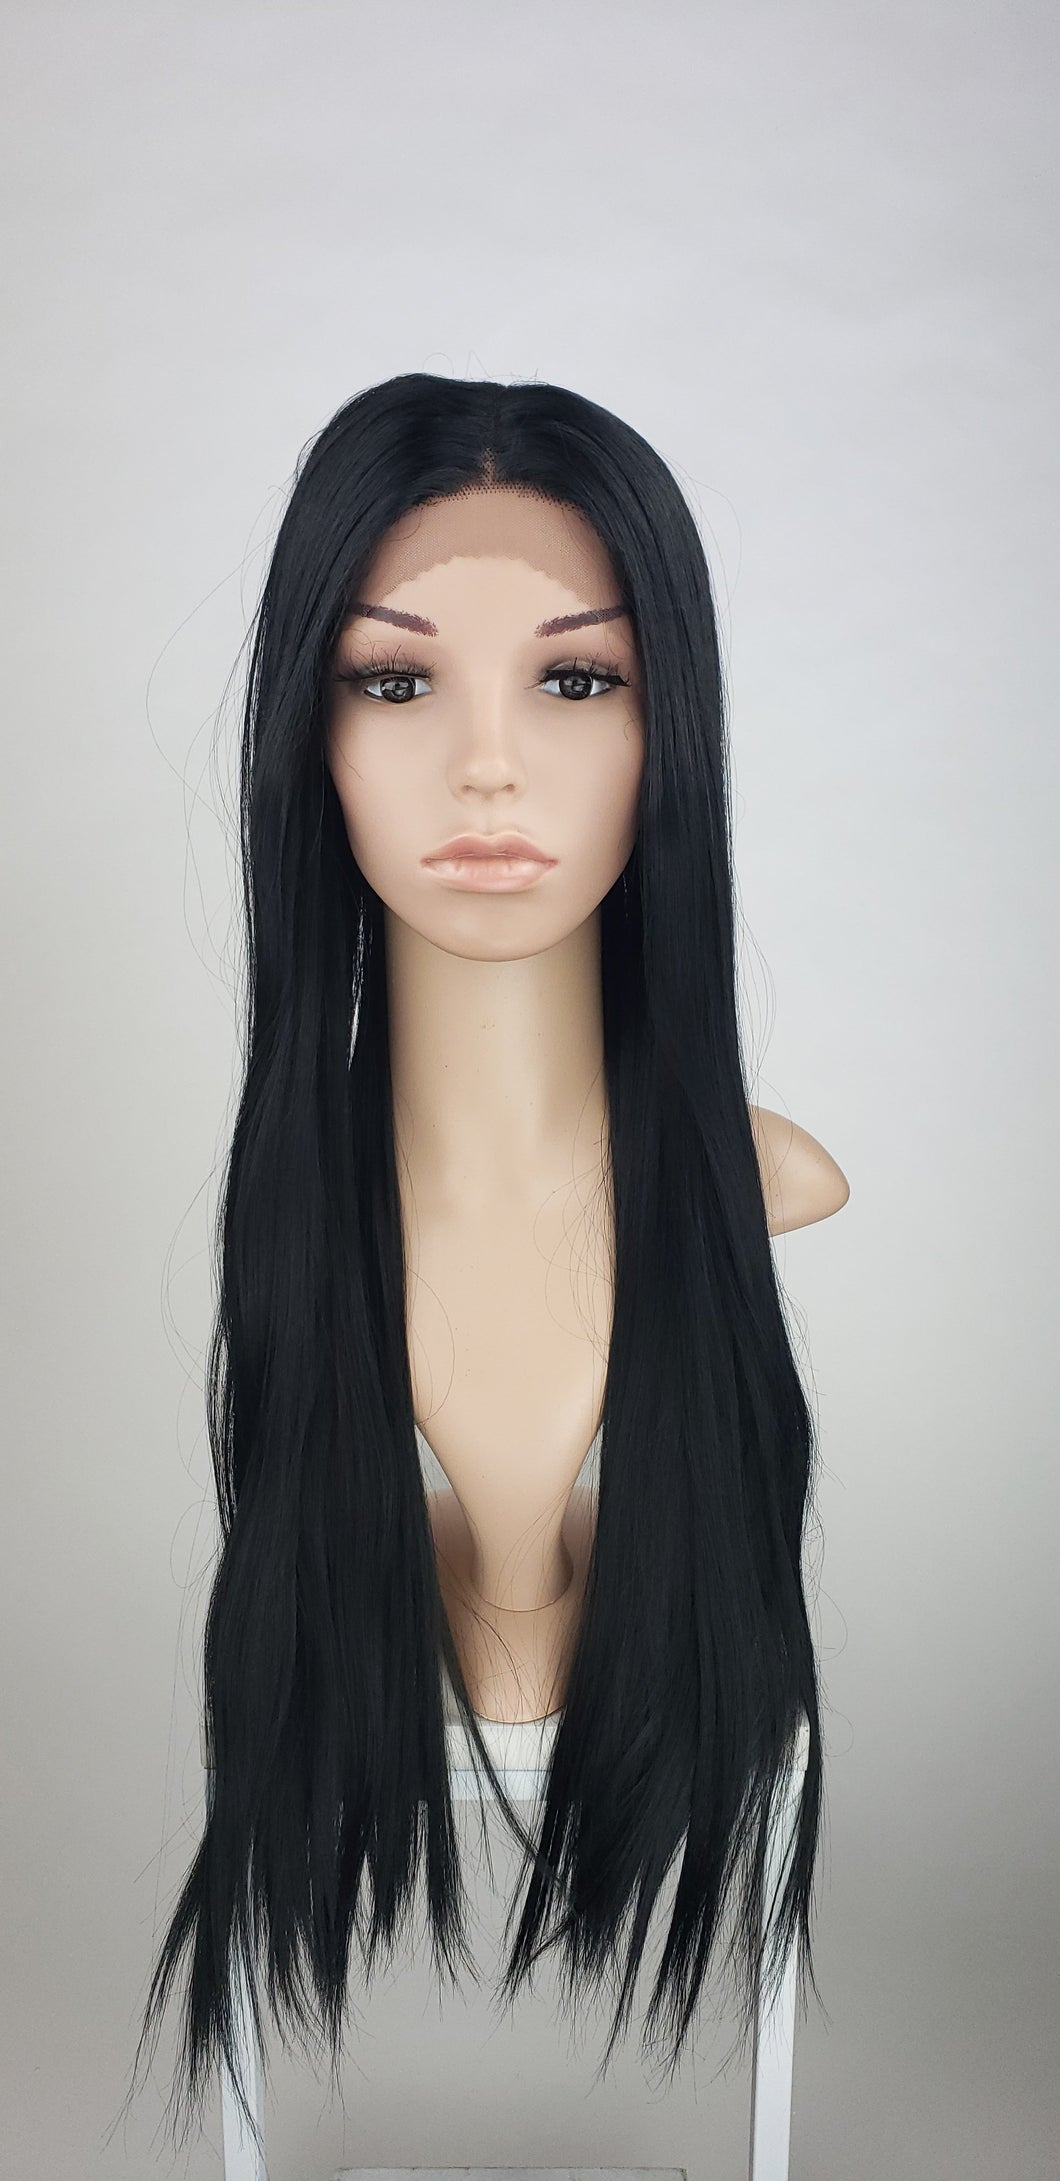 Pose Wigs Black Long Straight Lace Front Wig - Special Full Lace Top Princess Series LPBEL1